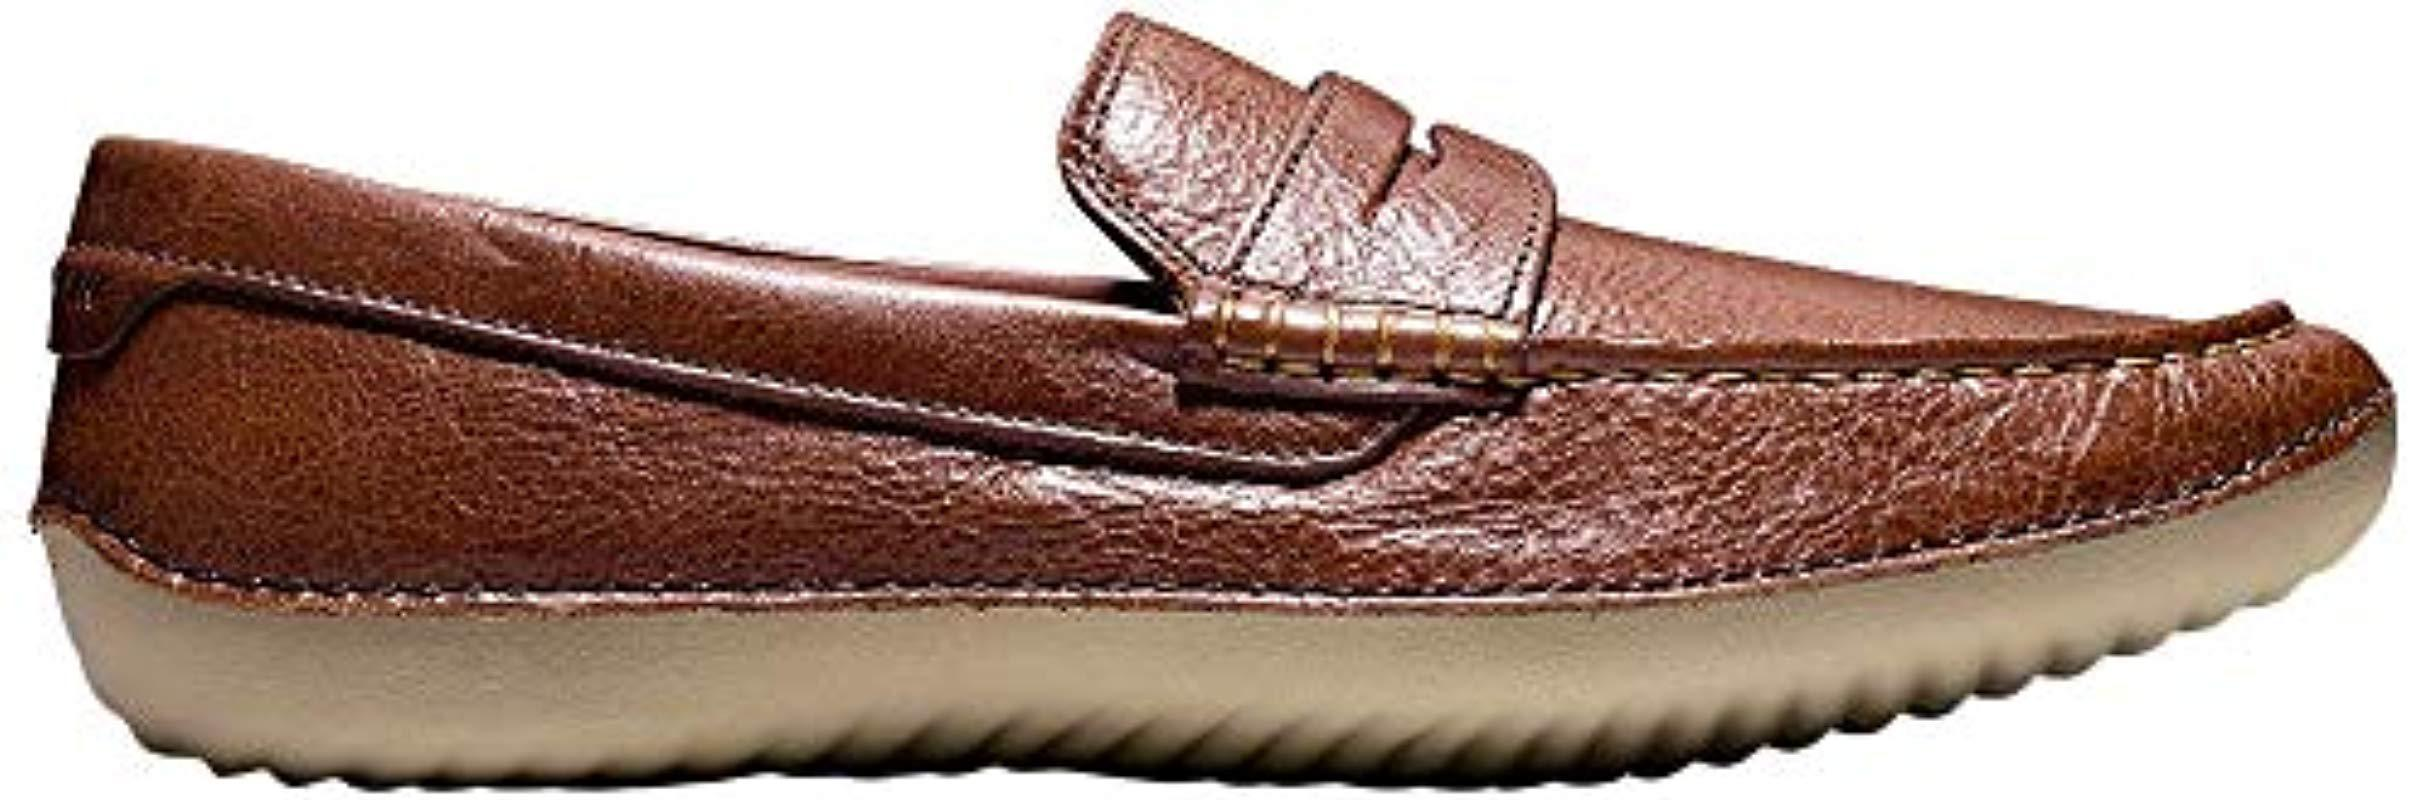 d426470fa9c Lyst - Cole Haan Motogrand Penny Loafer in Brown for Men - Save 15%